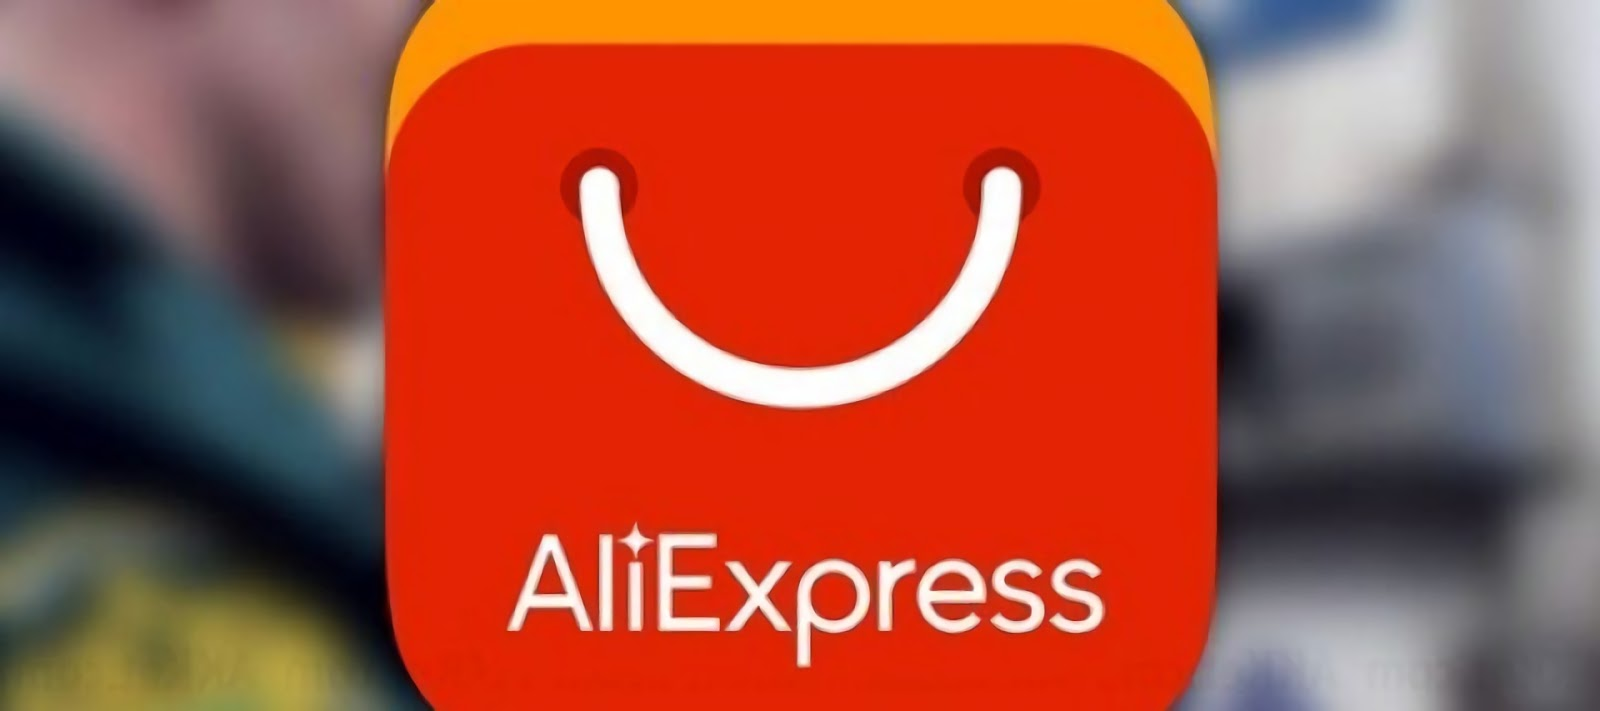 How to order on AliExpress - master the Chinese marketplaces